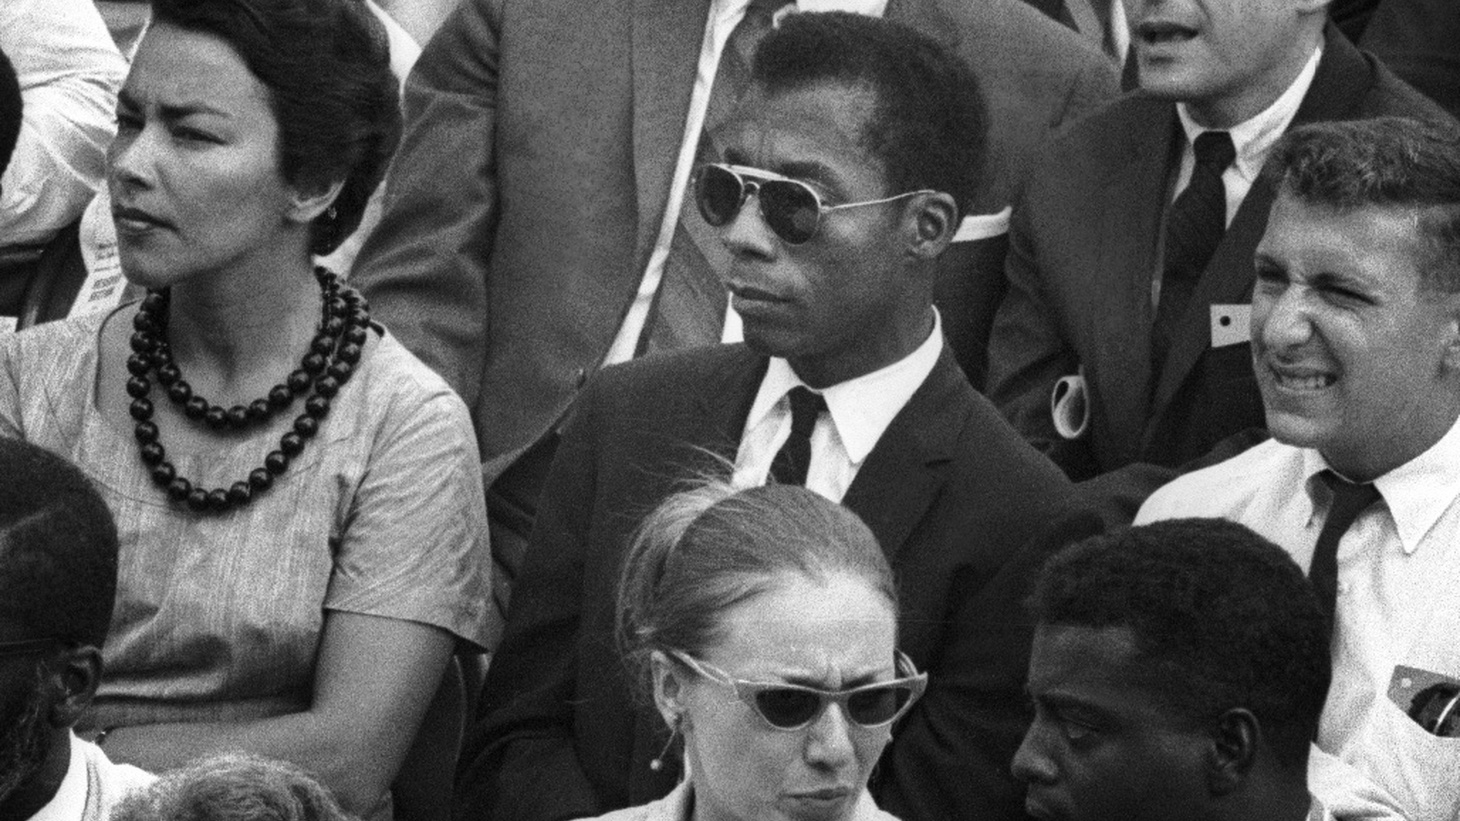 Director Raoul Peck's film about the essayist and activist James Baldwin was a decade in the making. Now, I Am Not Your Negro is Oscar-nominated for best documentary. Peck tells us how he got access to Baldwin's archives and why right now is the perfect time to learn about the late writer.